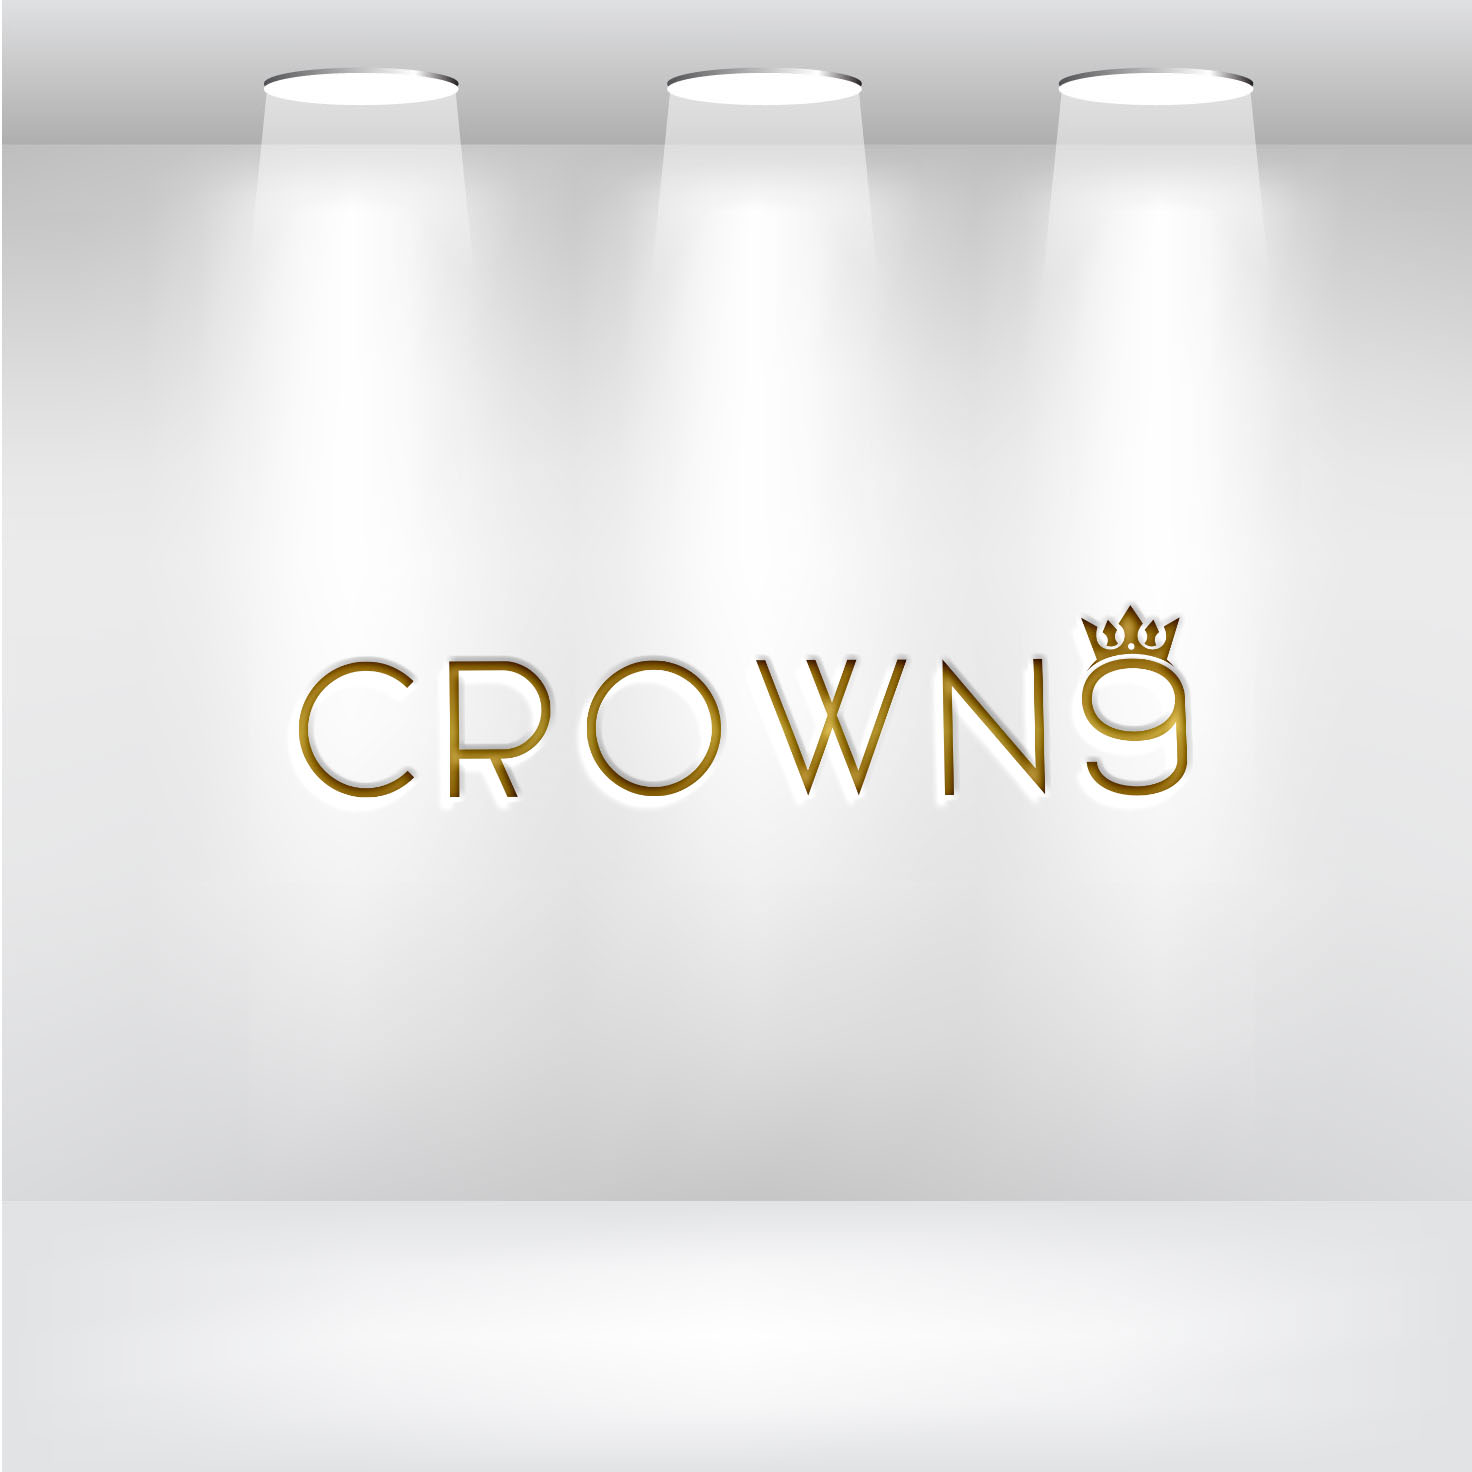 https://s3.amazonaws.com/cdn.designcrowd.com/blog/20-Best-Streetwear-Logo-Standouts-and-Lit-Ideas-for-You/crown-9-by-rixes-tay-designcrowd.jpg